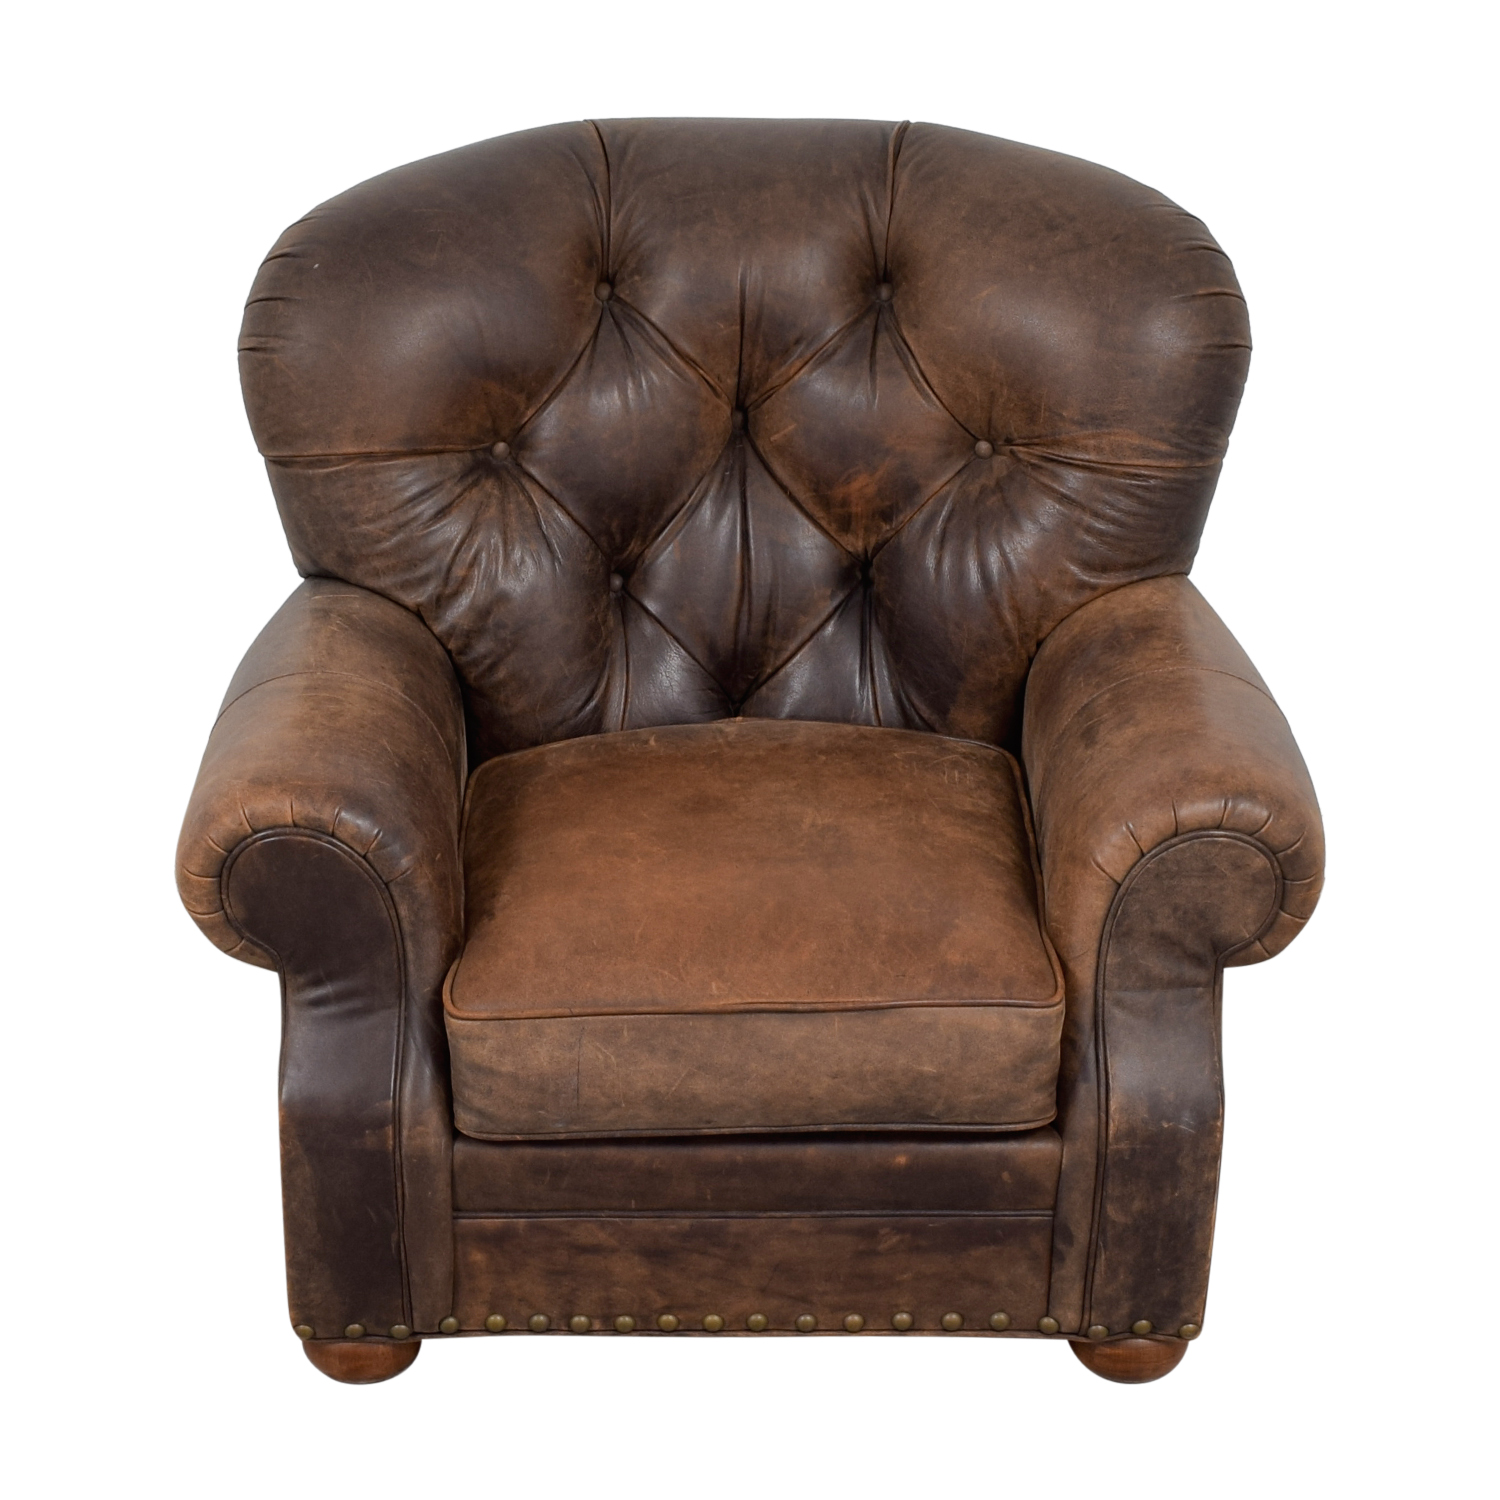 Restoration Hardware Leather Chairs 88 Off Restoration Hardware Restoration Hardware